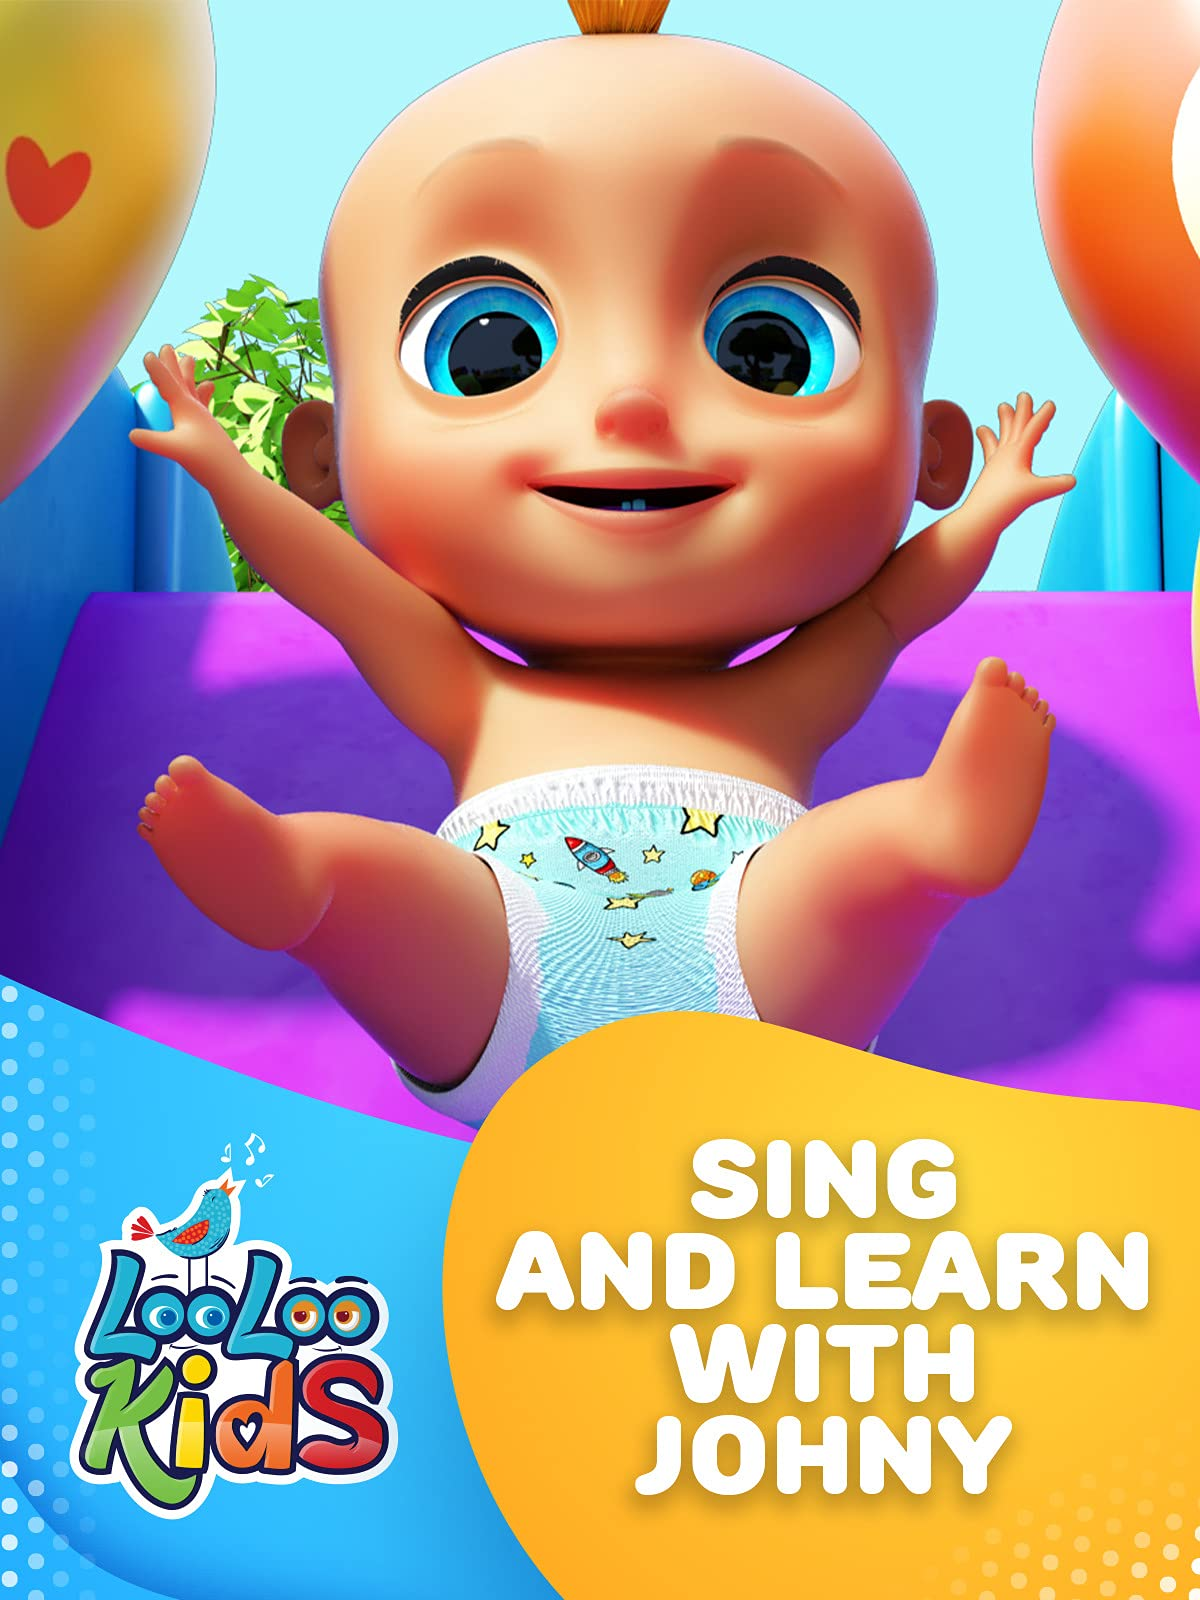 Sing and Learn with Johny - LooLoo Kids